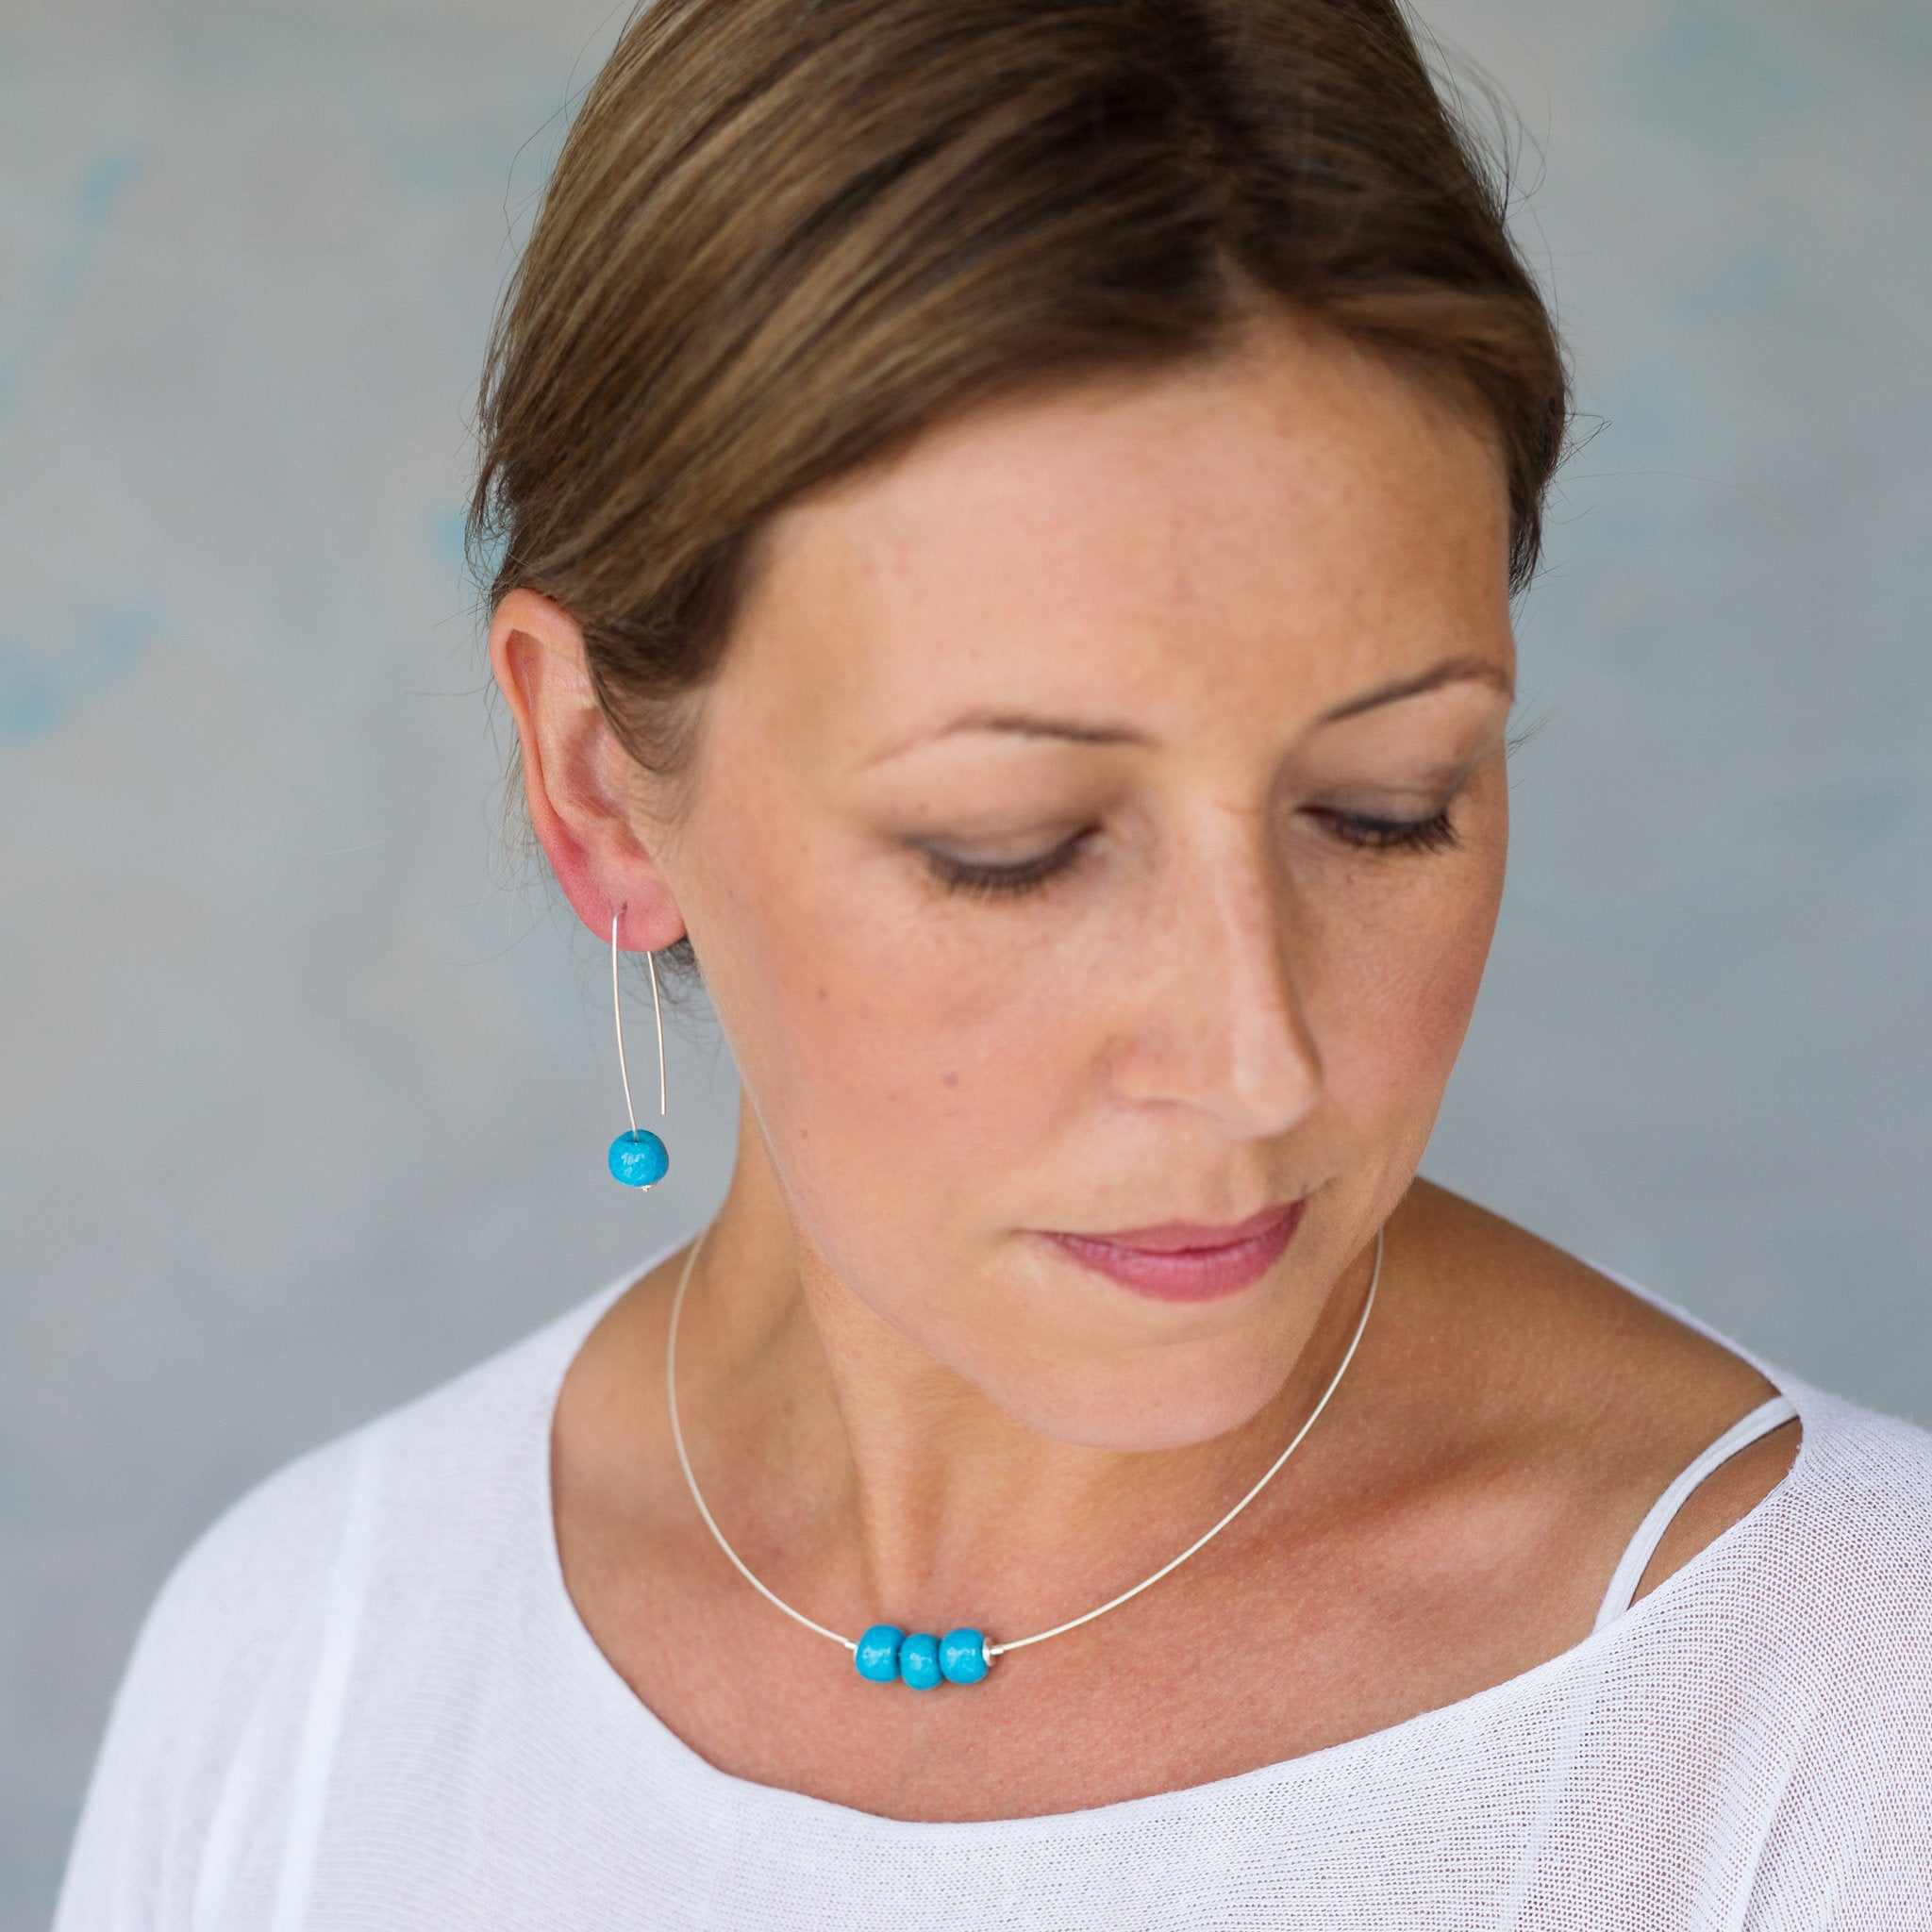 Sterling Silver Necklace with Three Turquoise Ceramic Beads - kriket-broadhurst jewellery Australian made